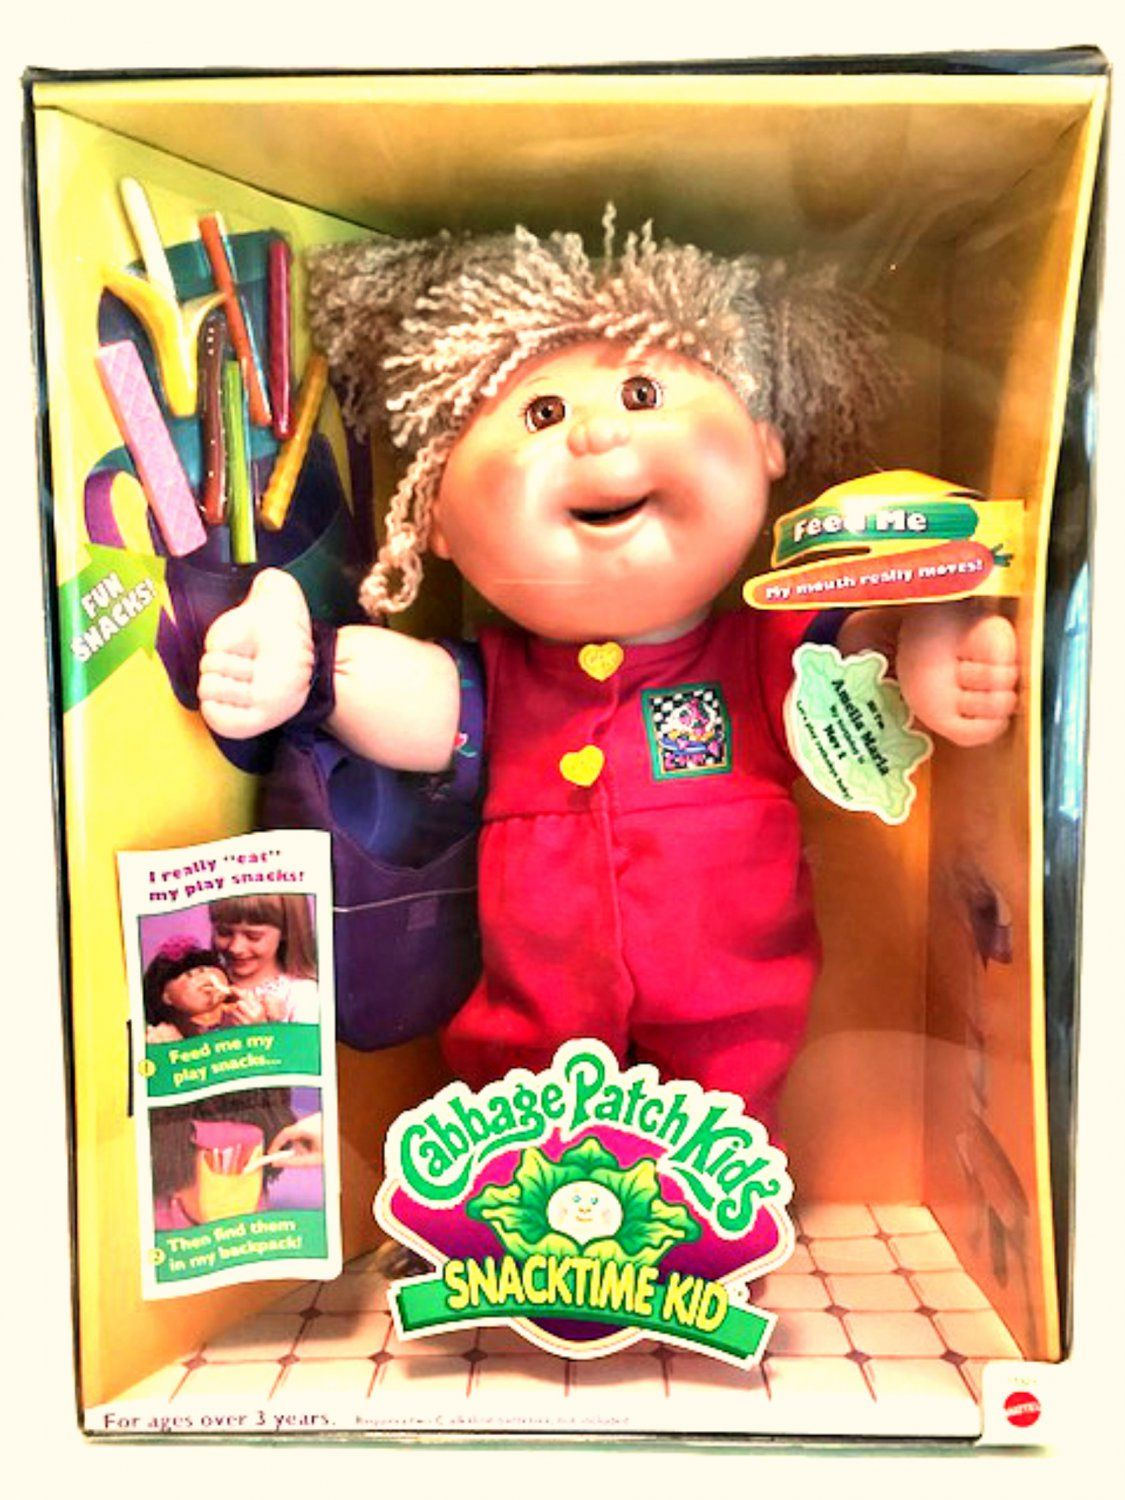 Cabbage Patch Kids Snacktime Kid Rare Doll Amelia Marla Mattel 1995 Patch Kids Cabbage Patch Kids Cabbage Patch Dolls